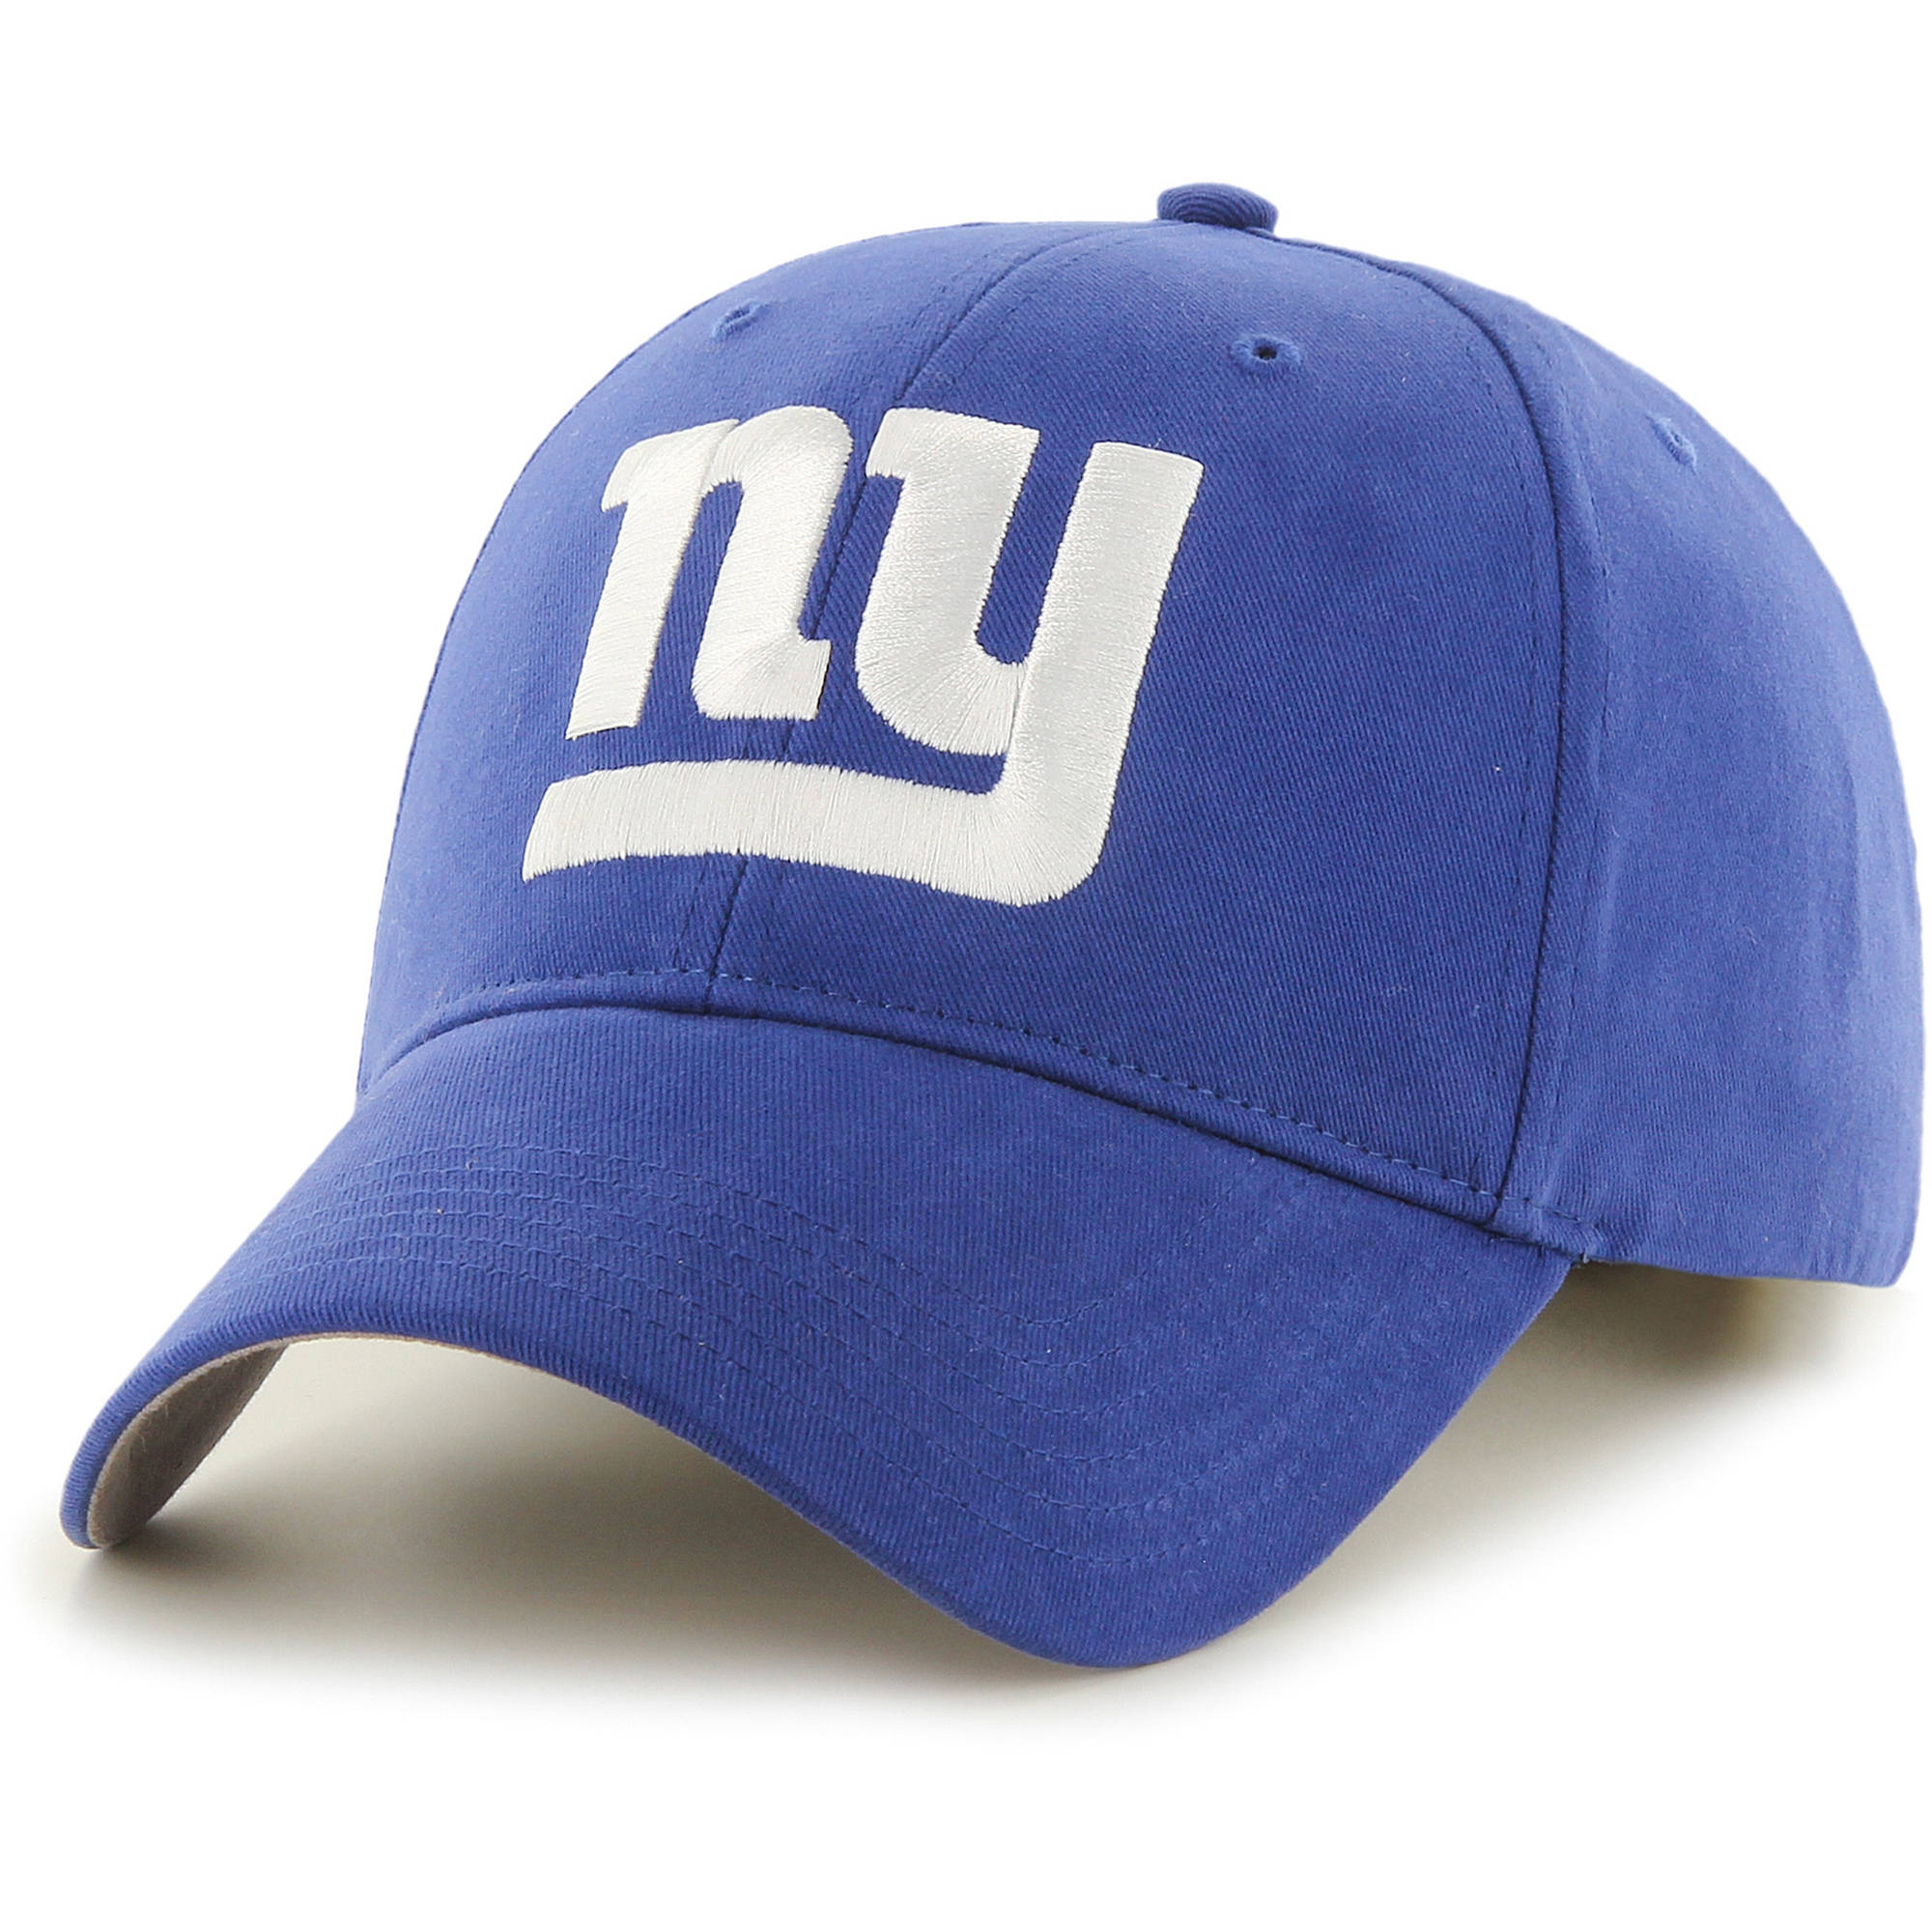 NFL New York Giants Basic Cap / Hat by Fan Favorite